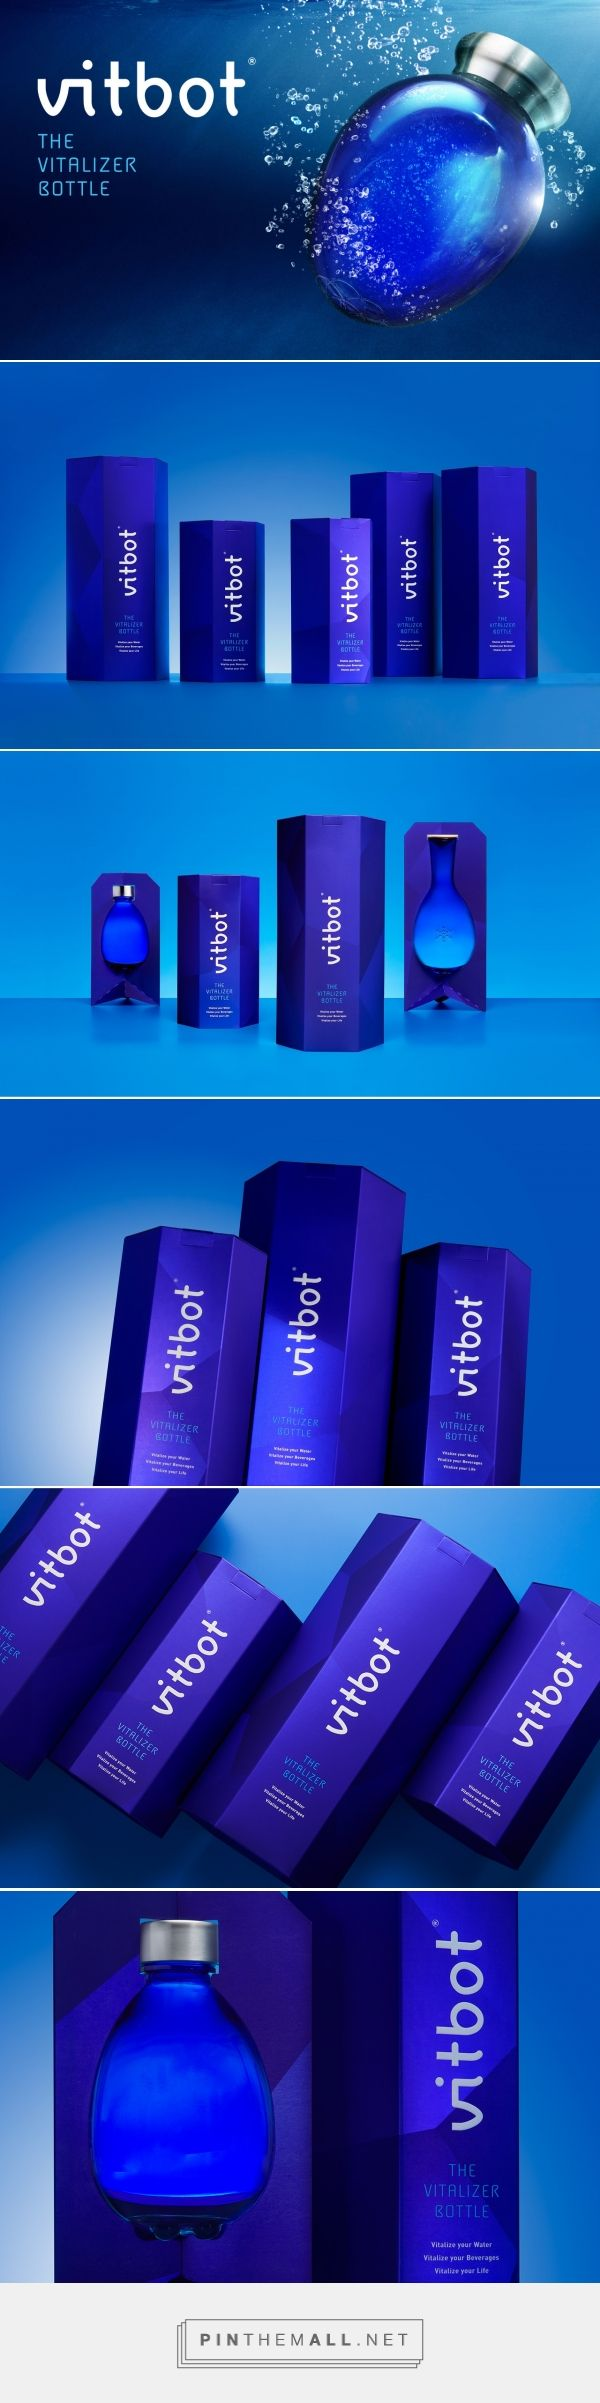 Vitbot reusable bottle packaging design by Vibranding - http://www.packagingoftheworld.com/2017/10/vitbot.html